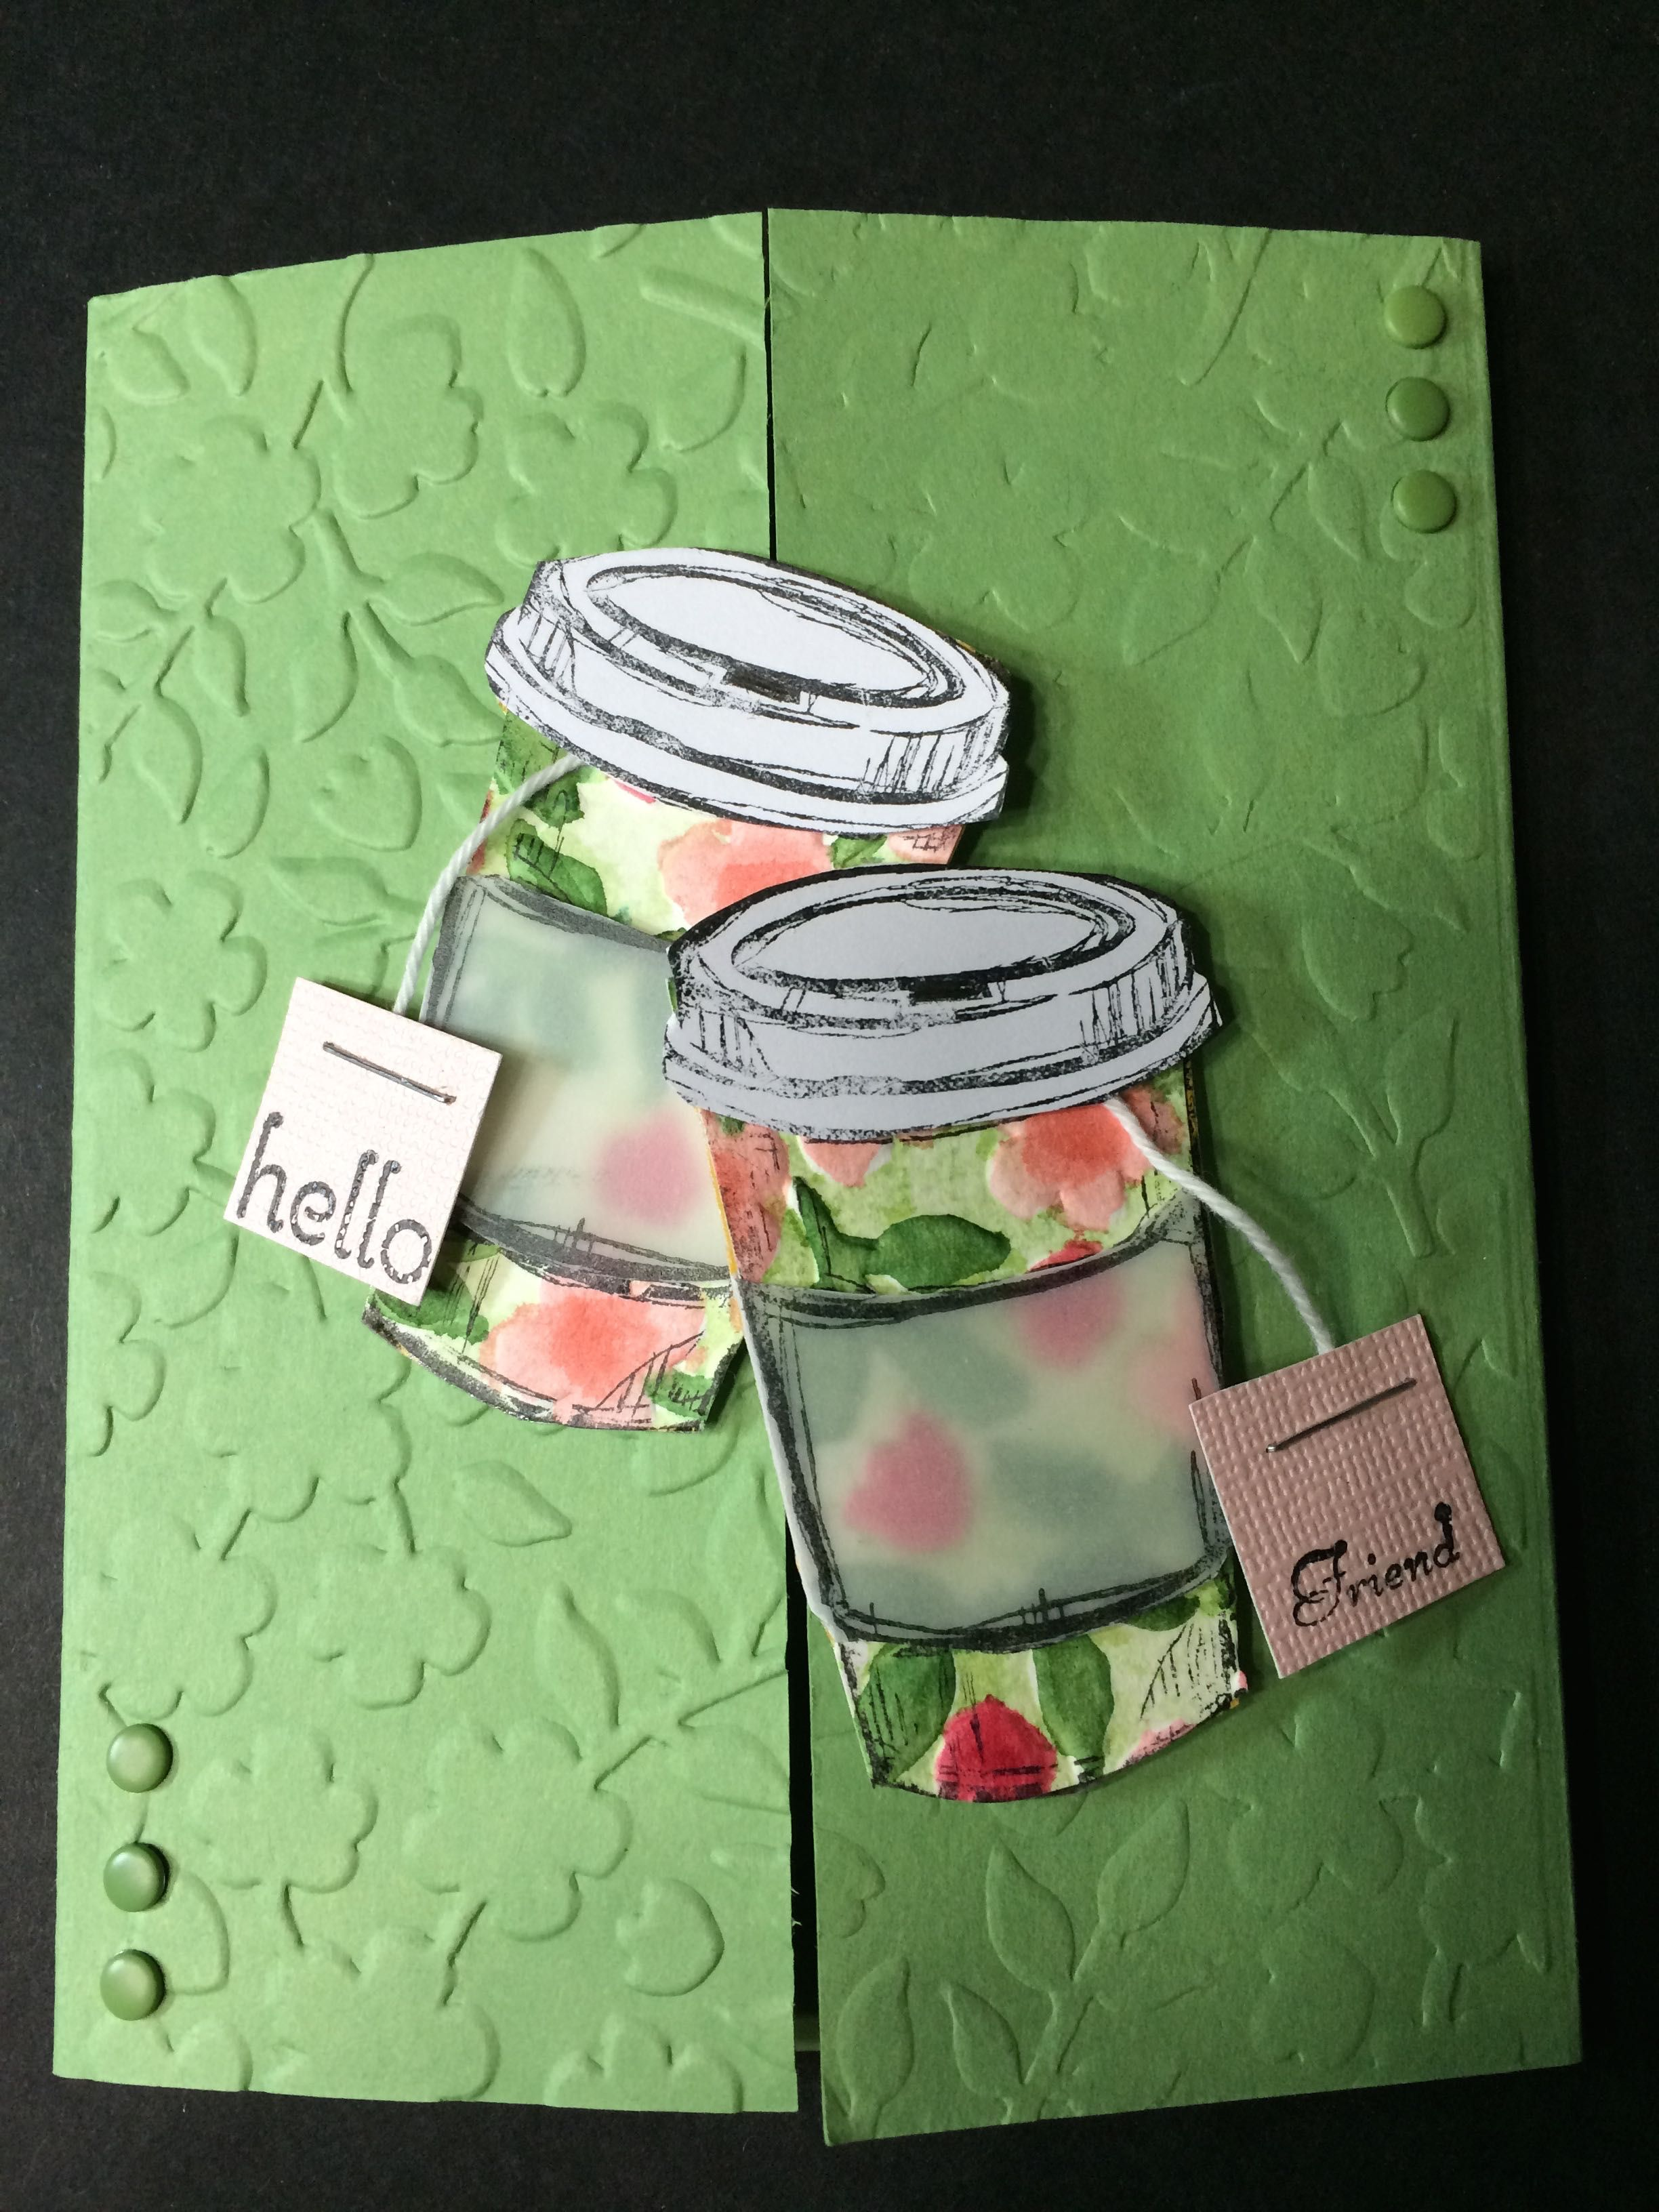 Time for Tea!  Perfect Blend stamp set by Stampin' Up! with Interlocking Gatefold designed card.  The cups are decorated with Spring Garden Embossing Folder as well as the card background.  Card by Beverly Stewart